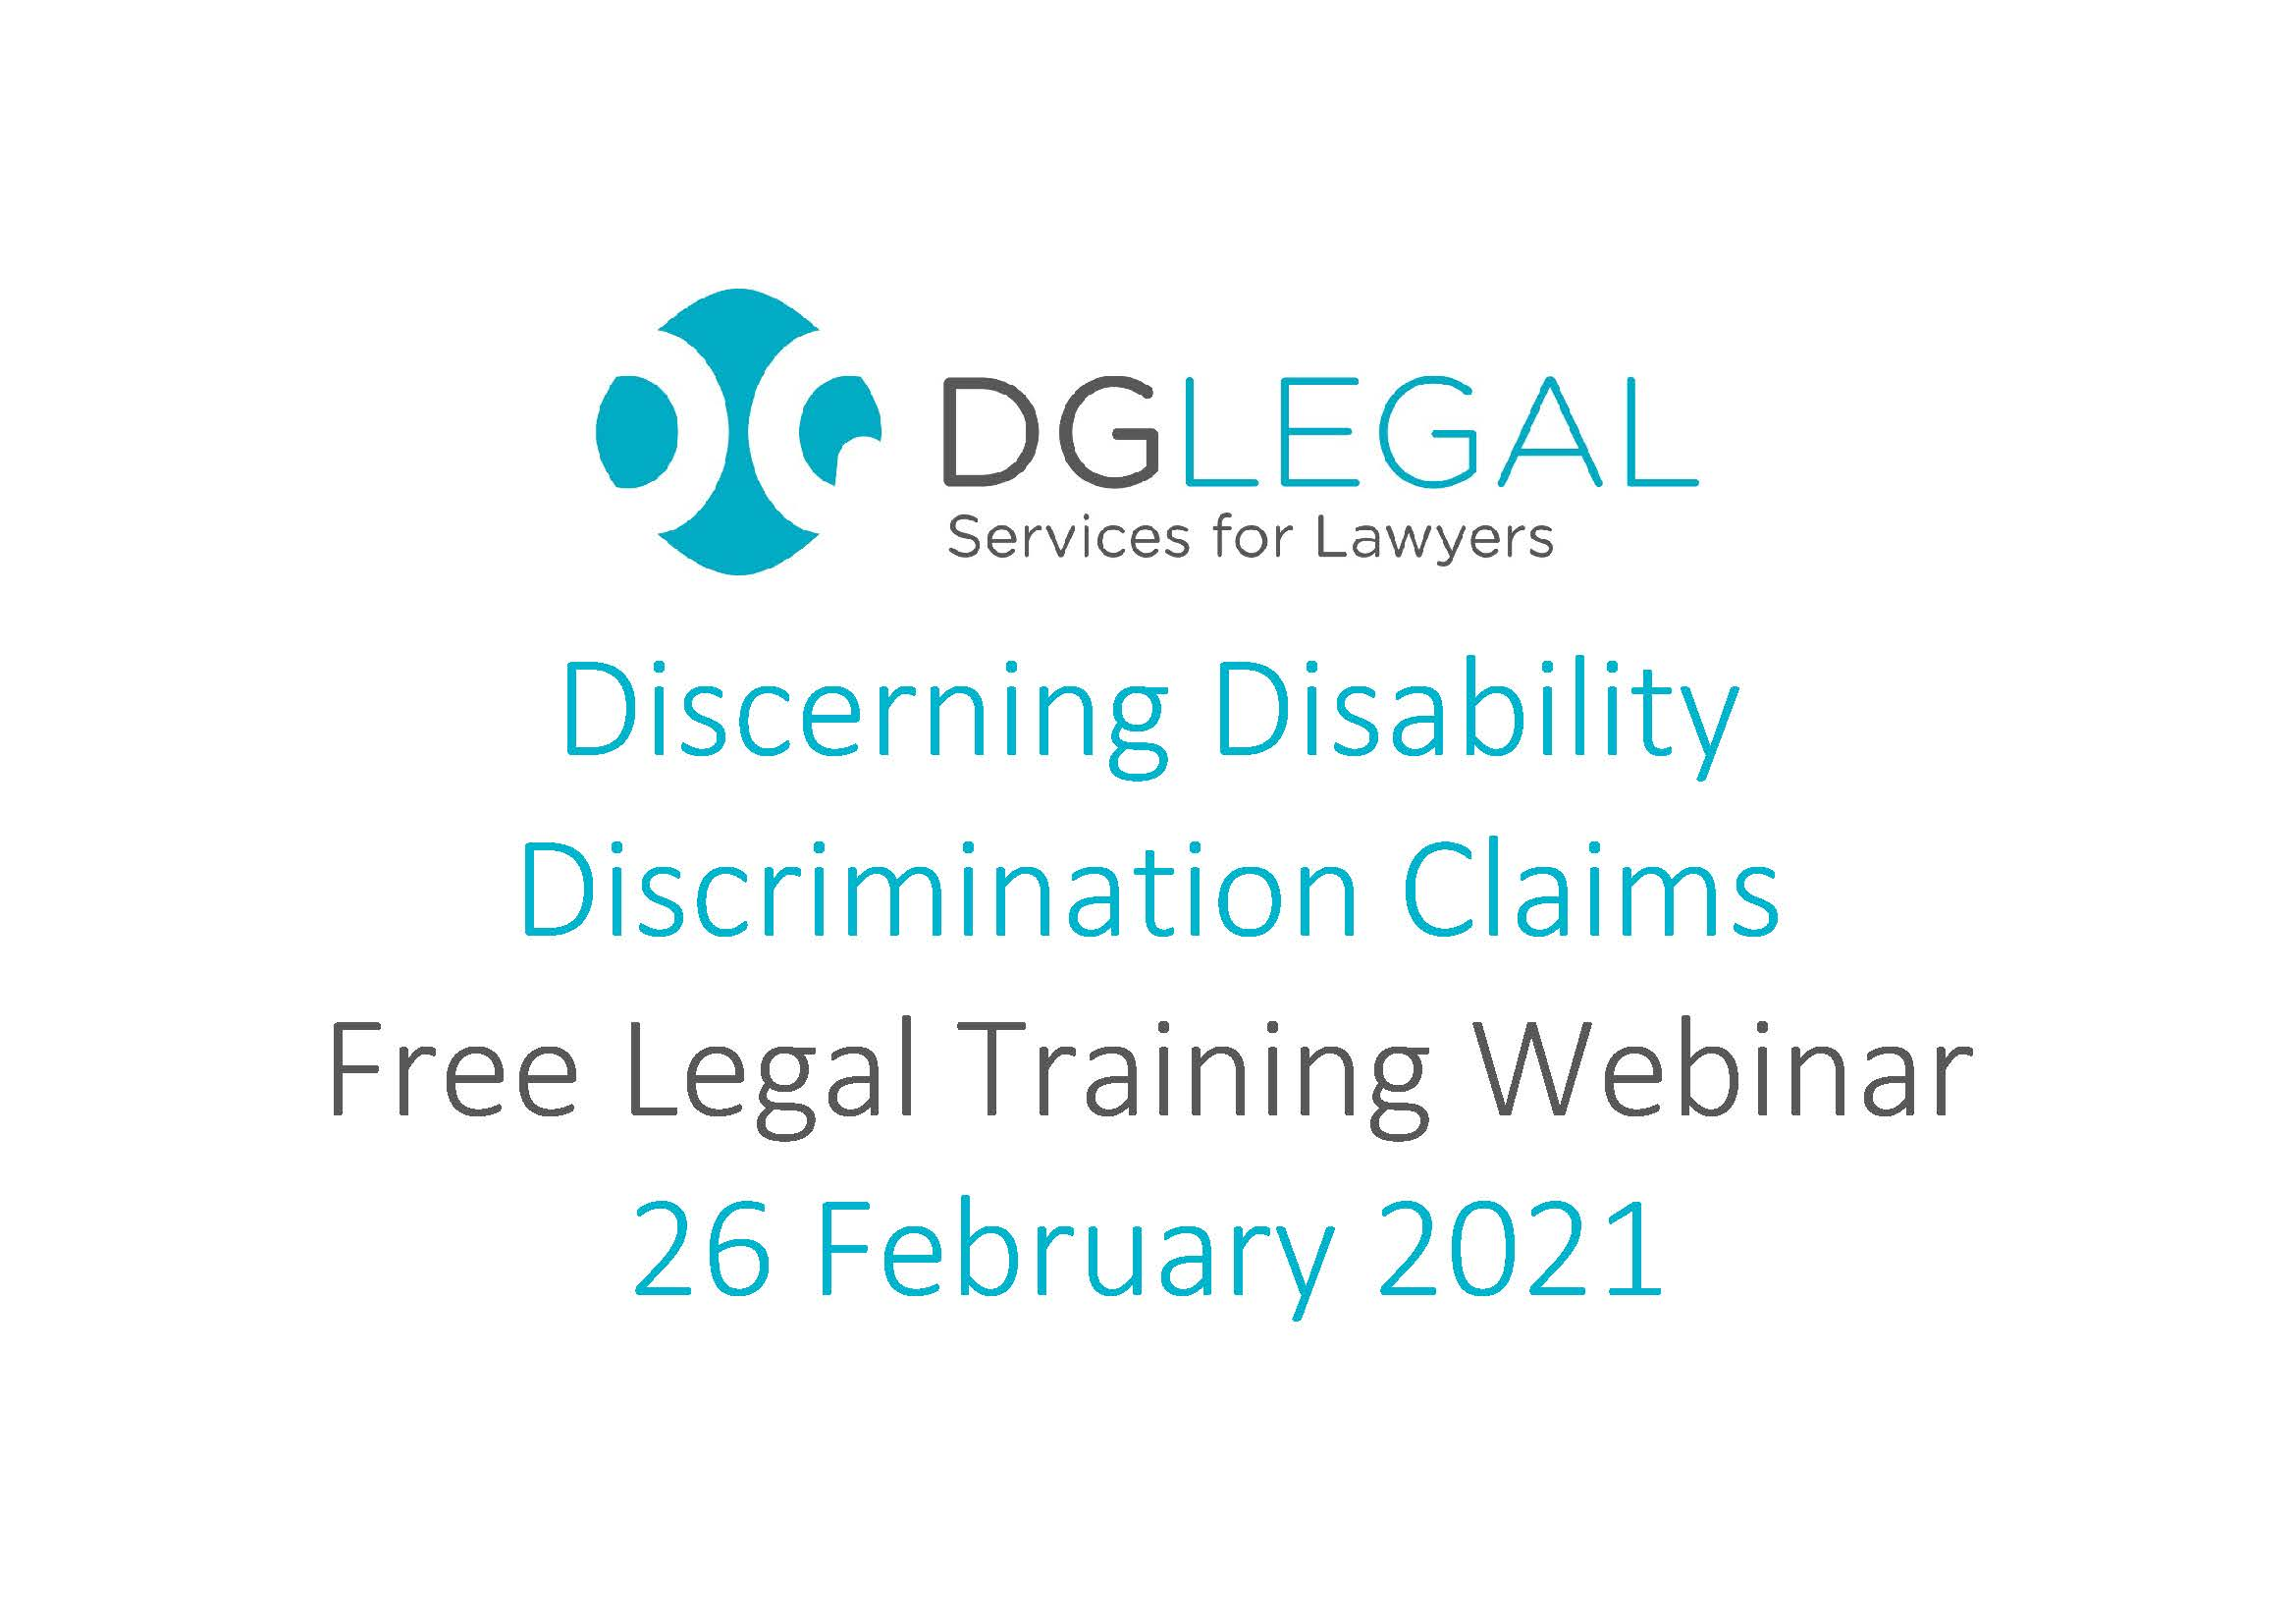 Discerning Disability Discrimination Claims